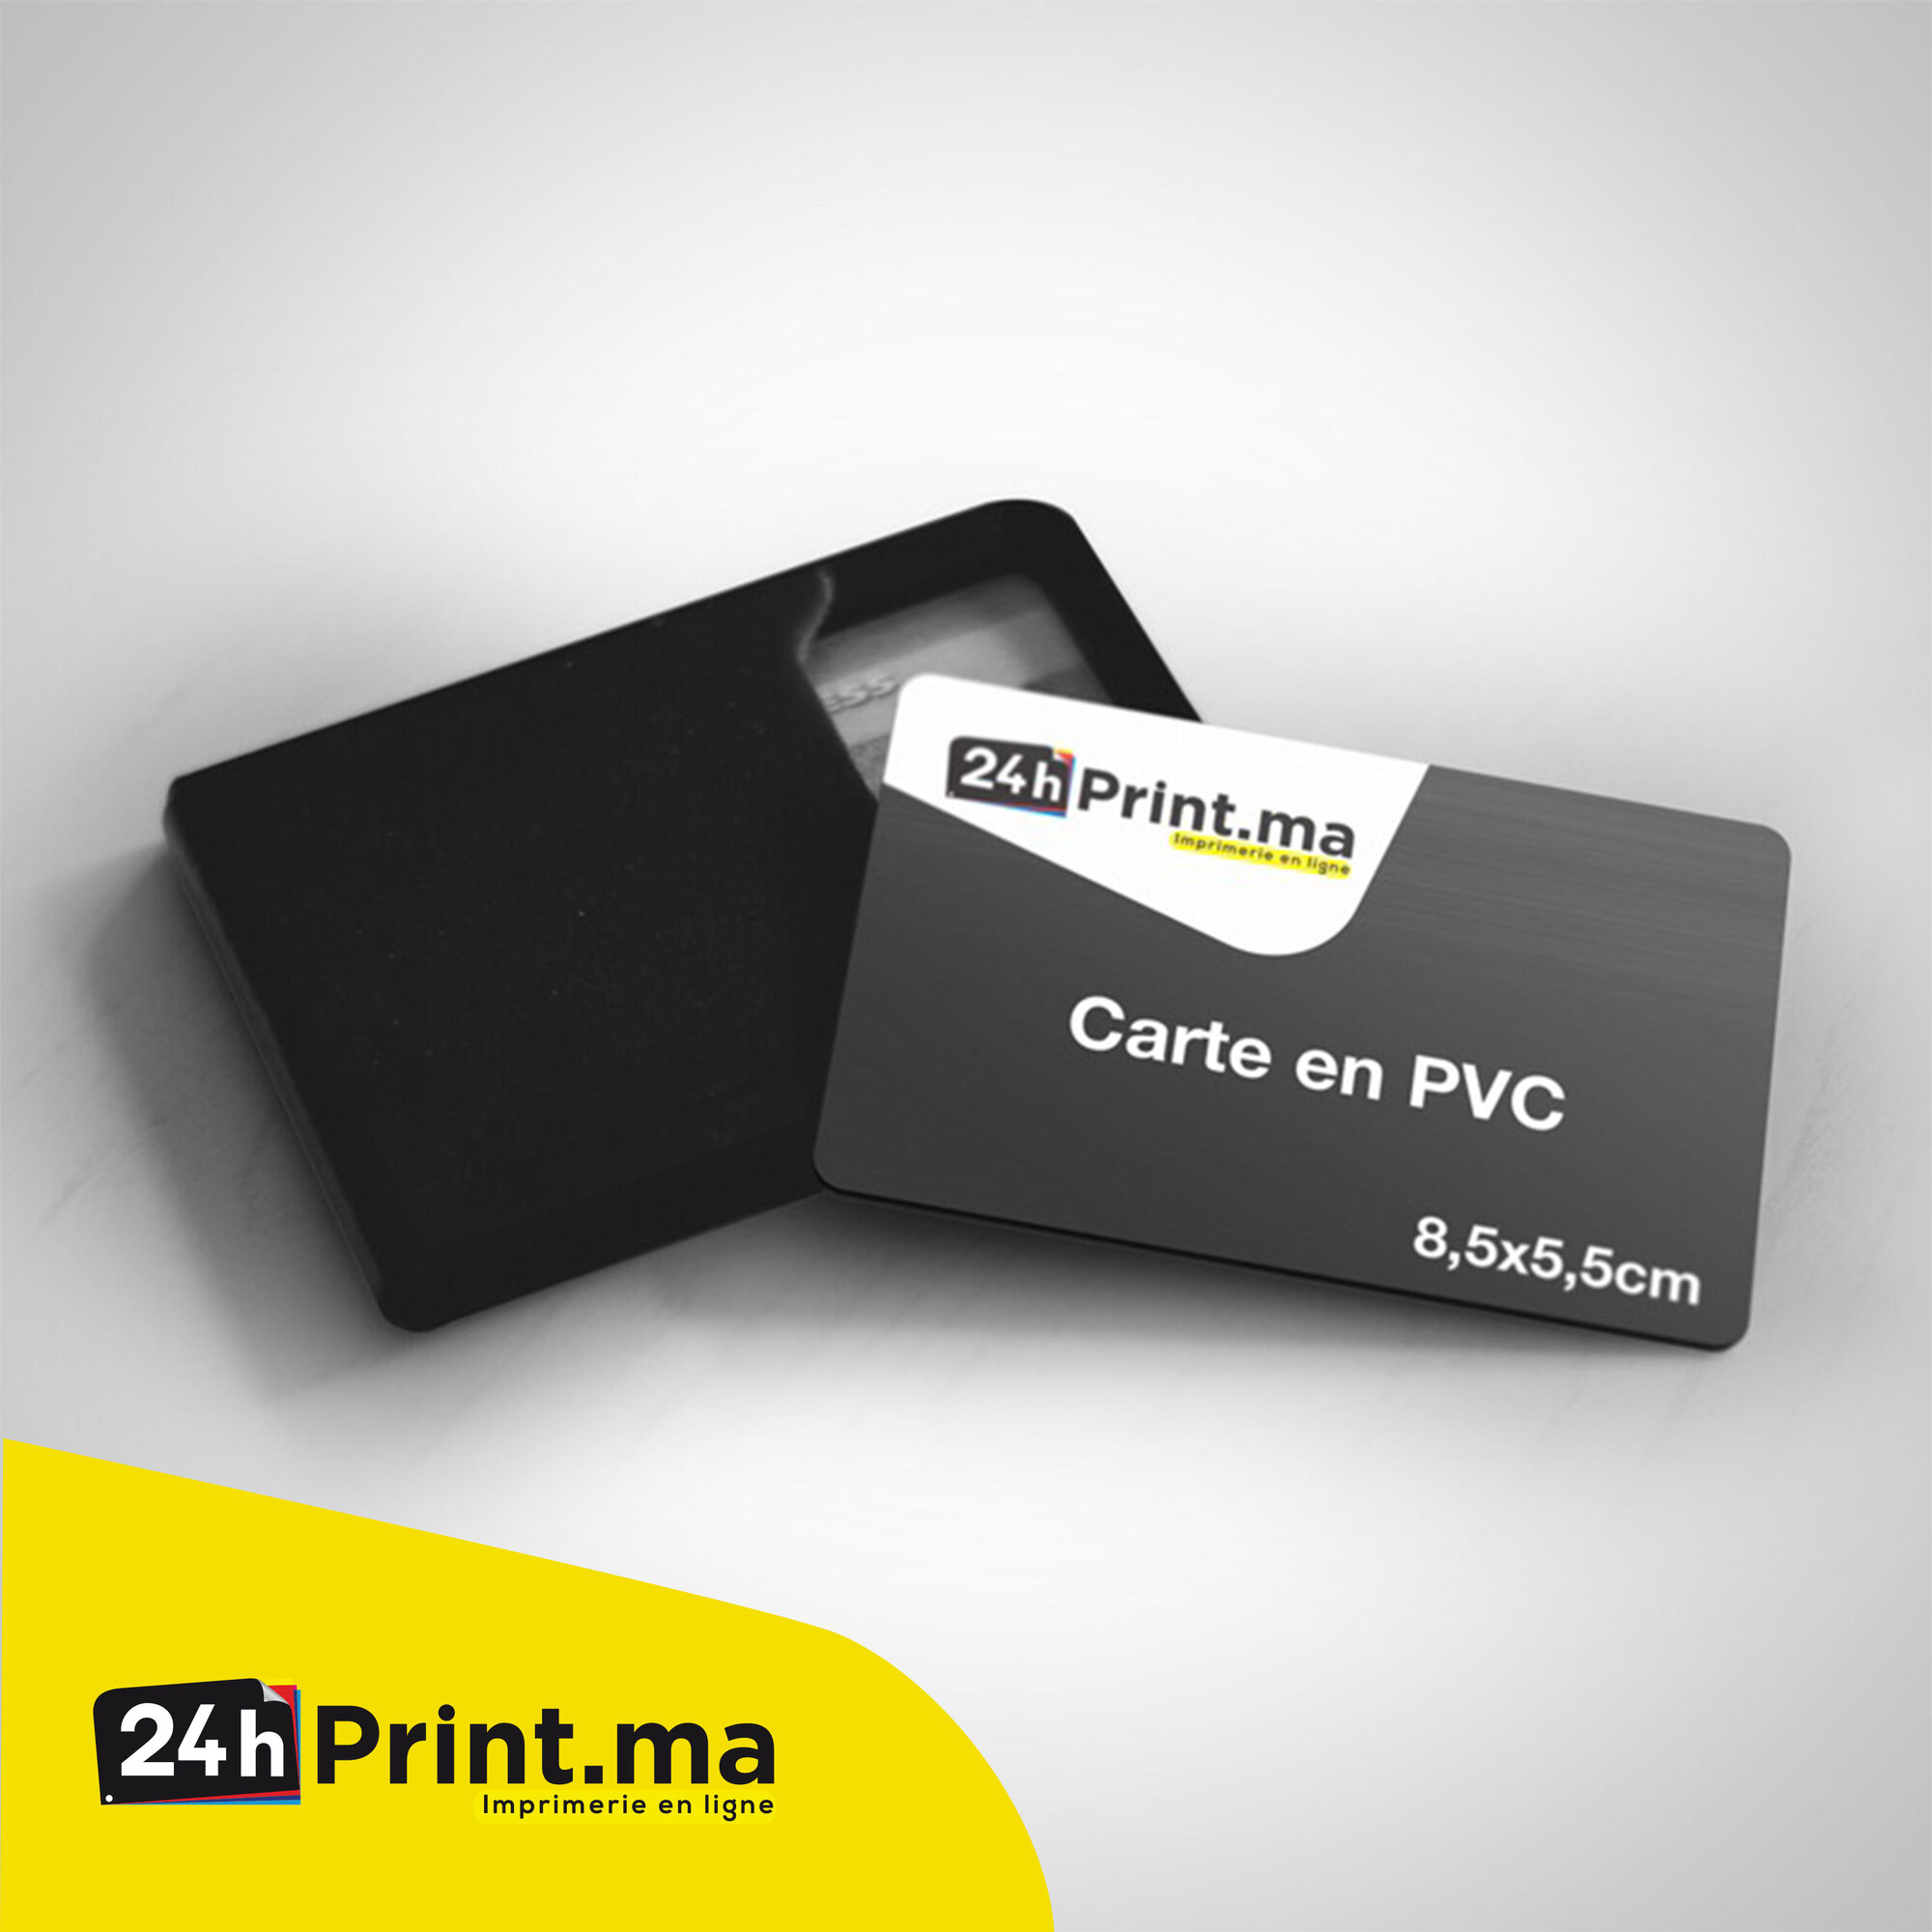 https://www.24hprint.ma/images/products_gallery_images/cartePVC90.jpg